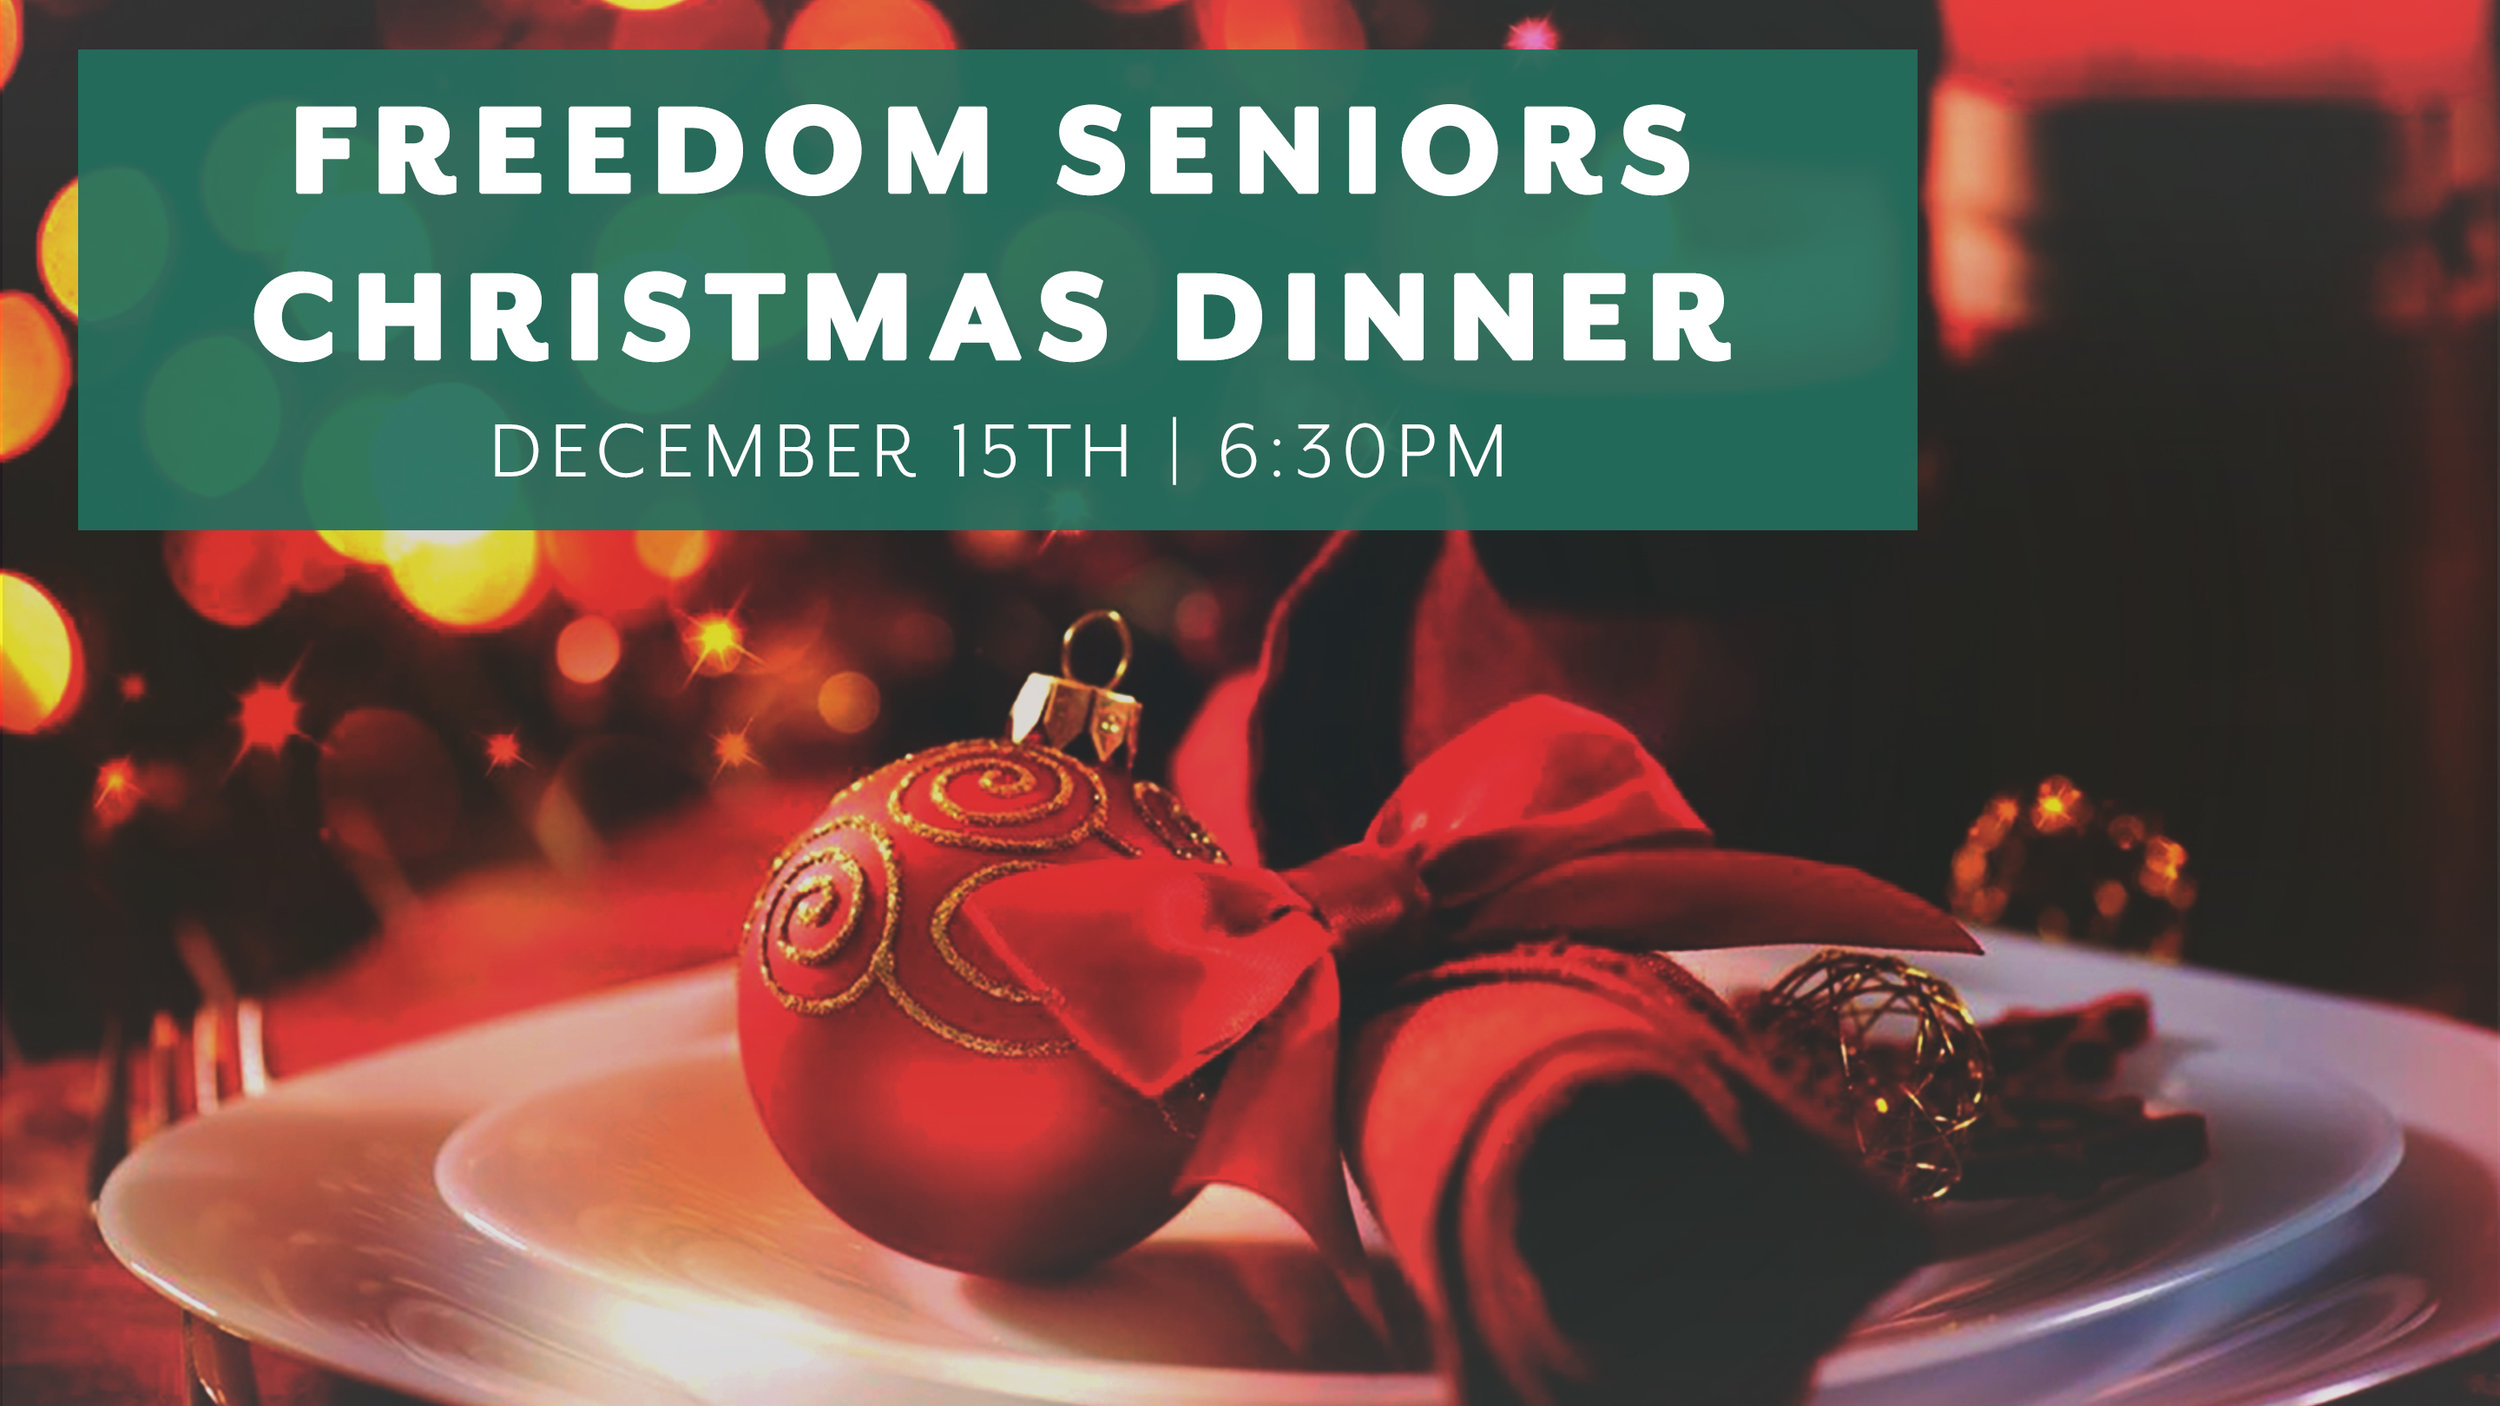 Join the Freedom Seniors for our annual Christmas Dinner. This is a festive time to celebrate the Christmas season together with plenty of food, fun, fellowship, games, music and a few Christmas surprises! In order to prepare for the event, please RSVP by clicking  here!